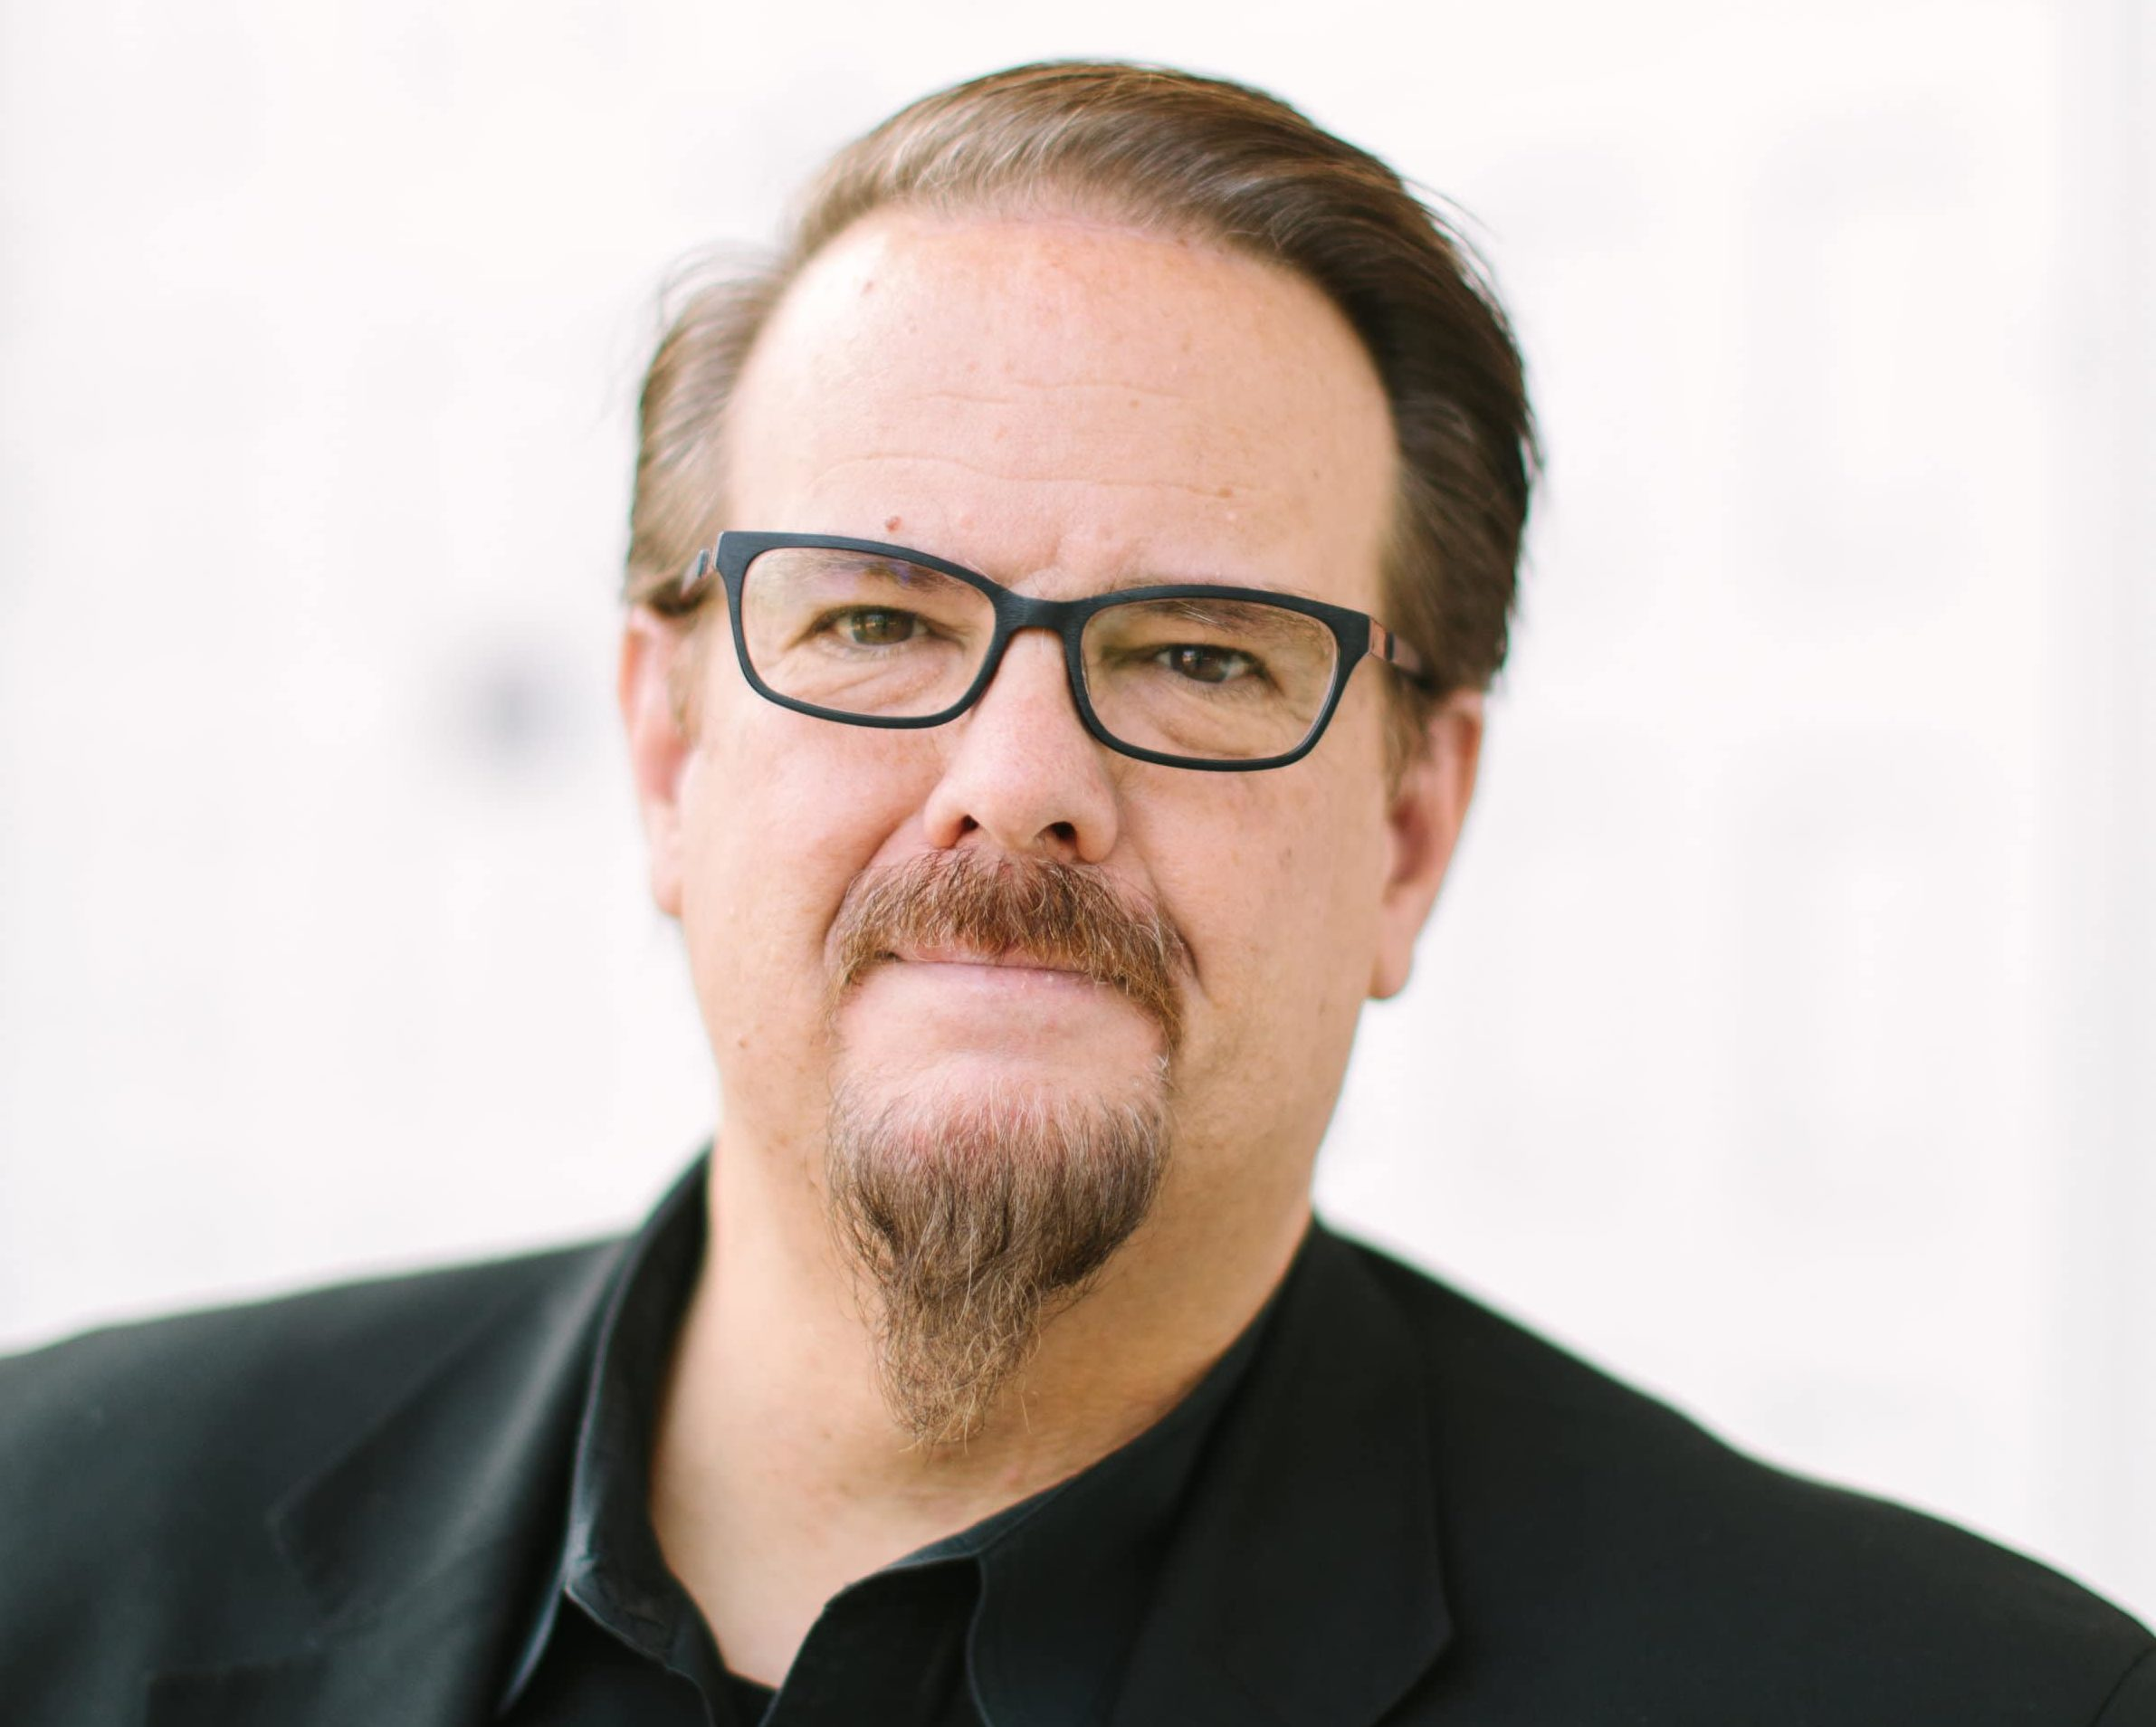 CNLP 237: Ed Stetzer on Why Christians Are Losing the Culture War, How the Culture is Changing, and What's Next For the Future Church